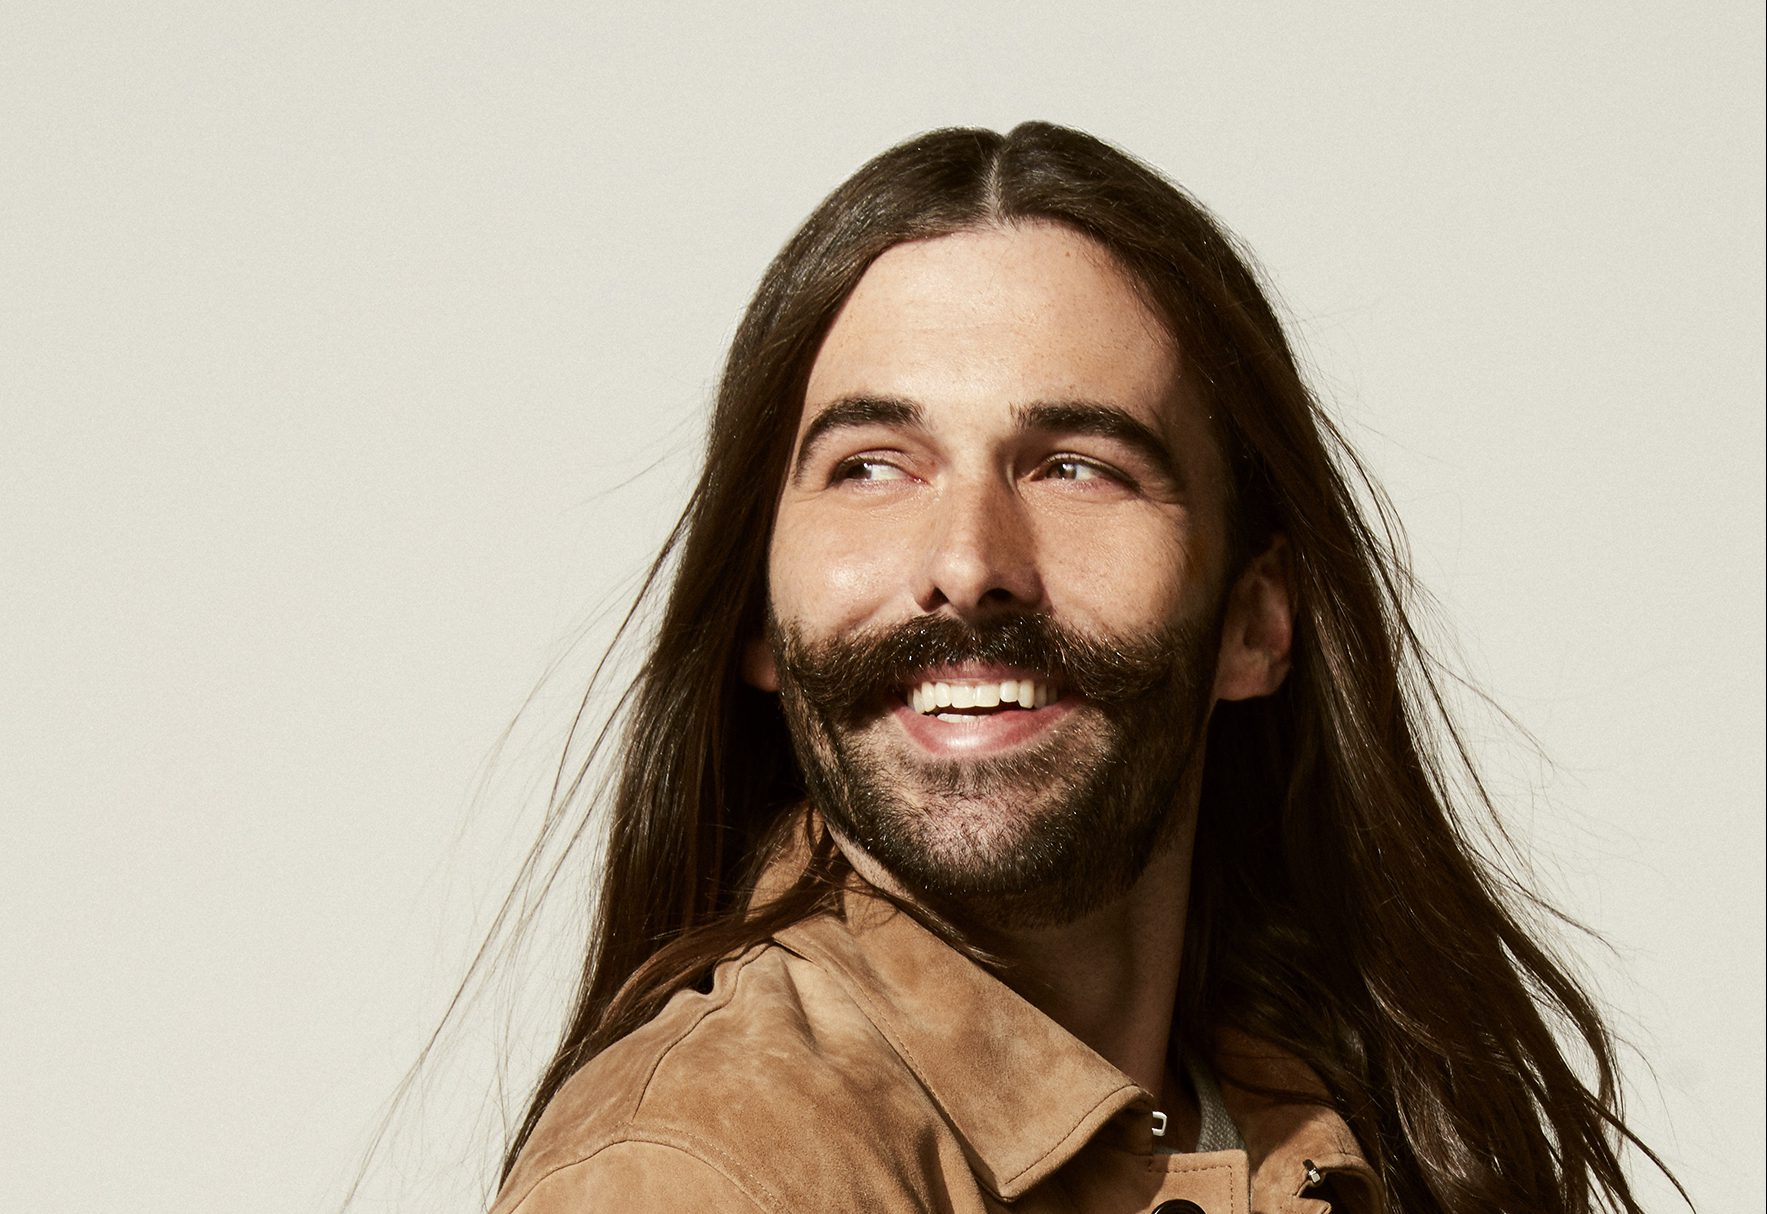 Van Ness, 31, is the effervescent grooming expert of Queer Eye. He returns to Netflix for the show's second season on June15.